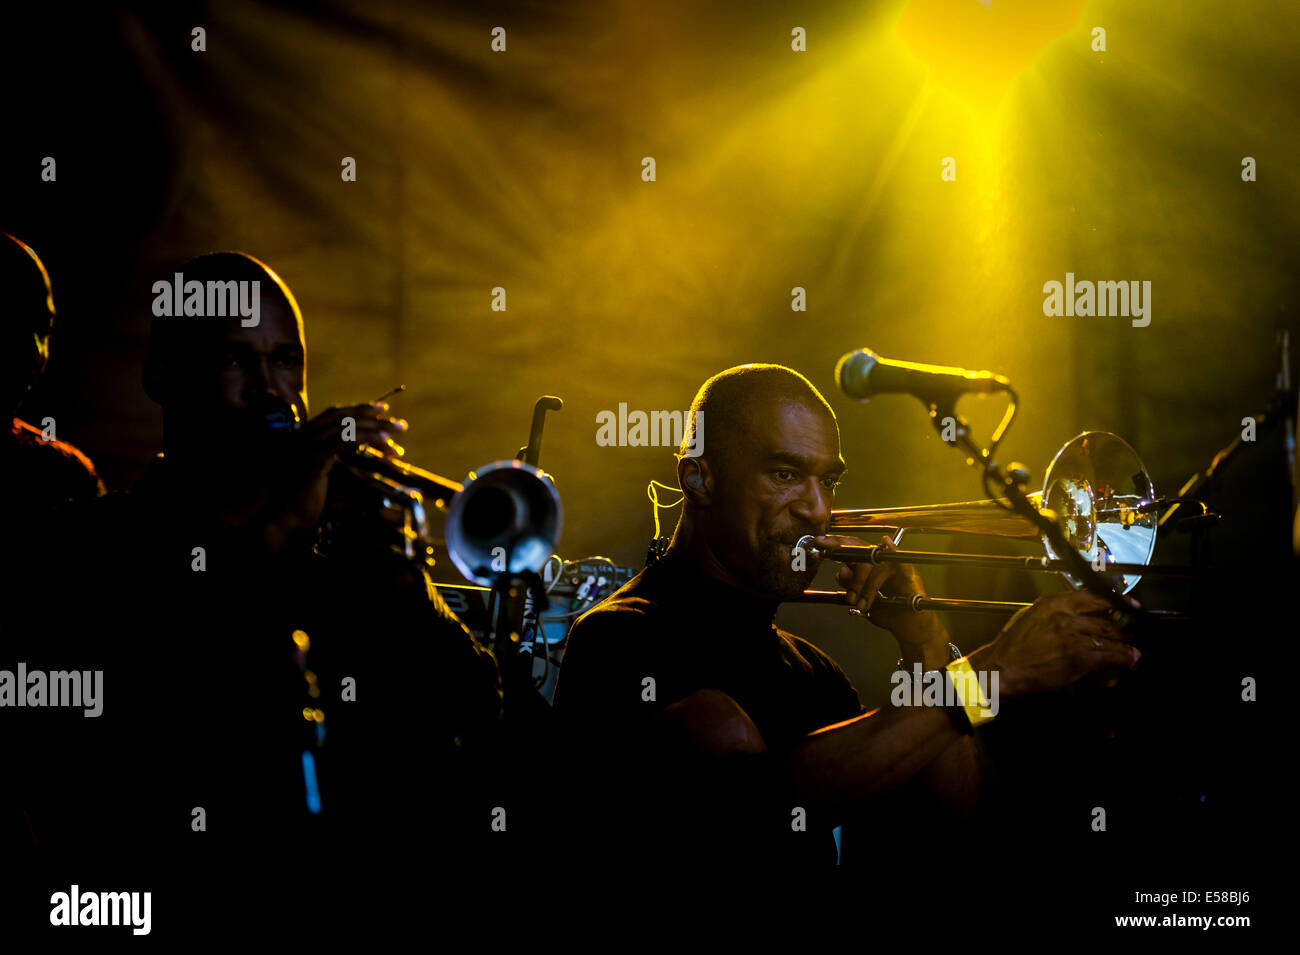 Musicians backing UB40 performing at the Brentwood Festival. - Stock Image